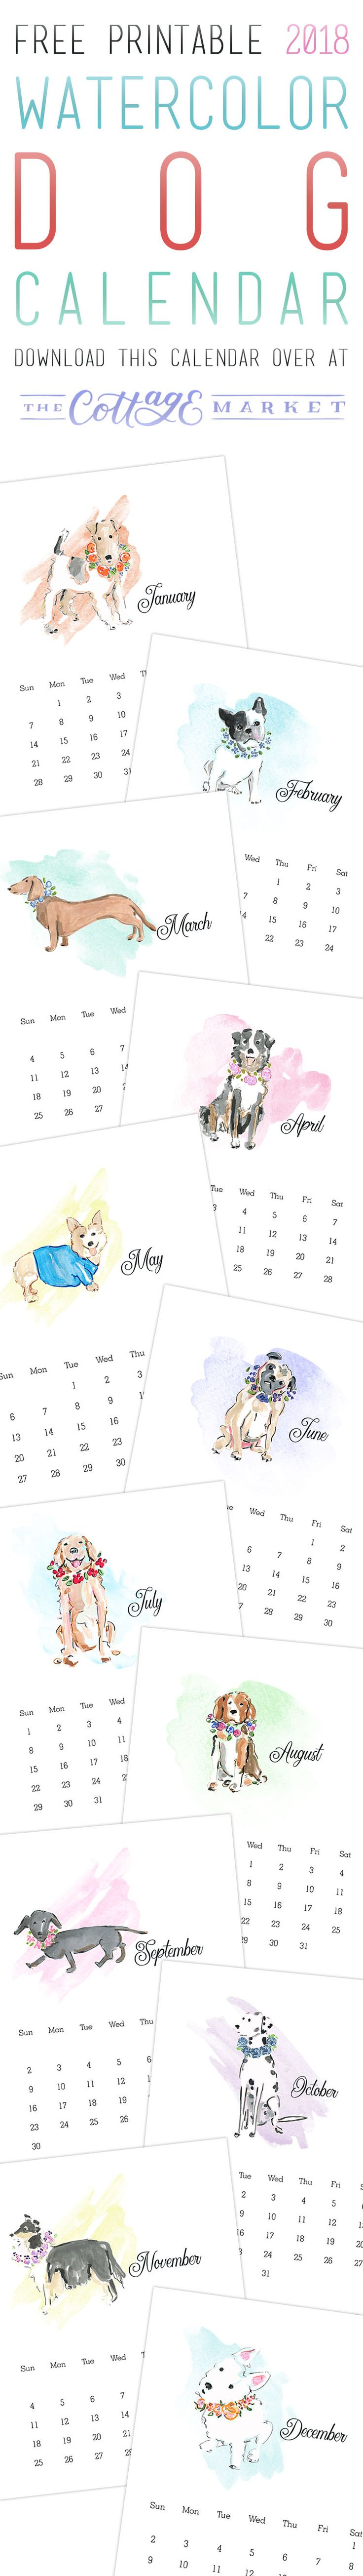 Free Printable 2018 Watercolor Dog Calendar